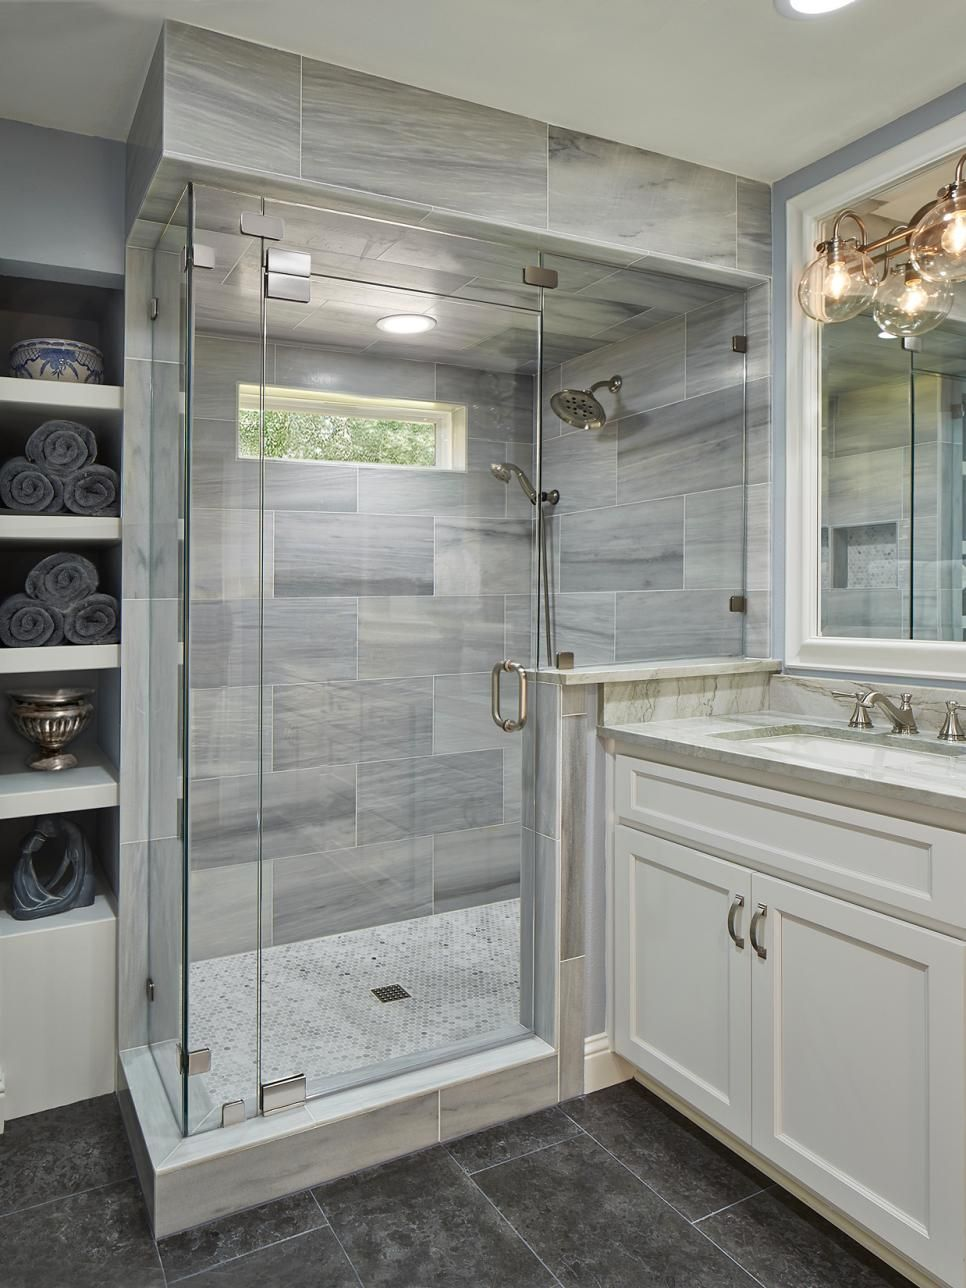 Beautiful Gray Master Bathroom Ideas Part - 9: A Mix Of Stone, Marble And Tiles Create A Rich And Elegant Master Bathroom.